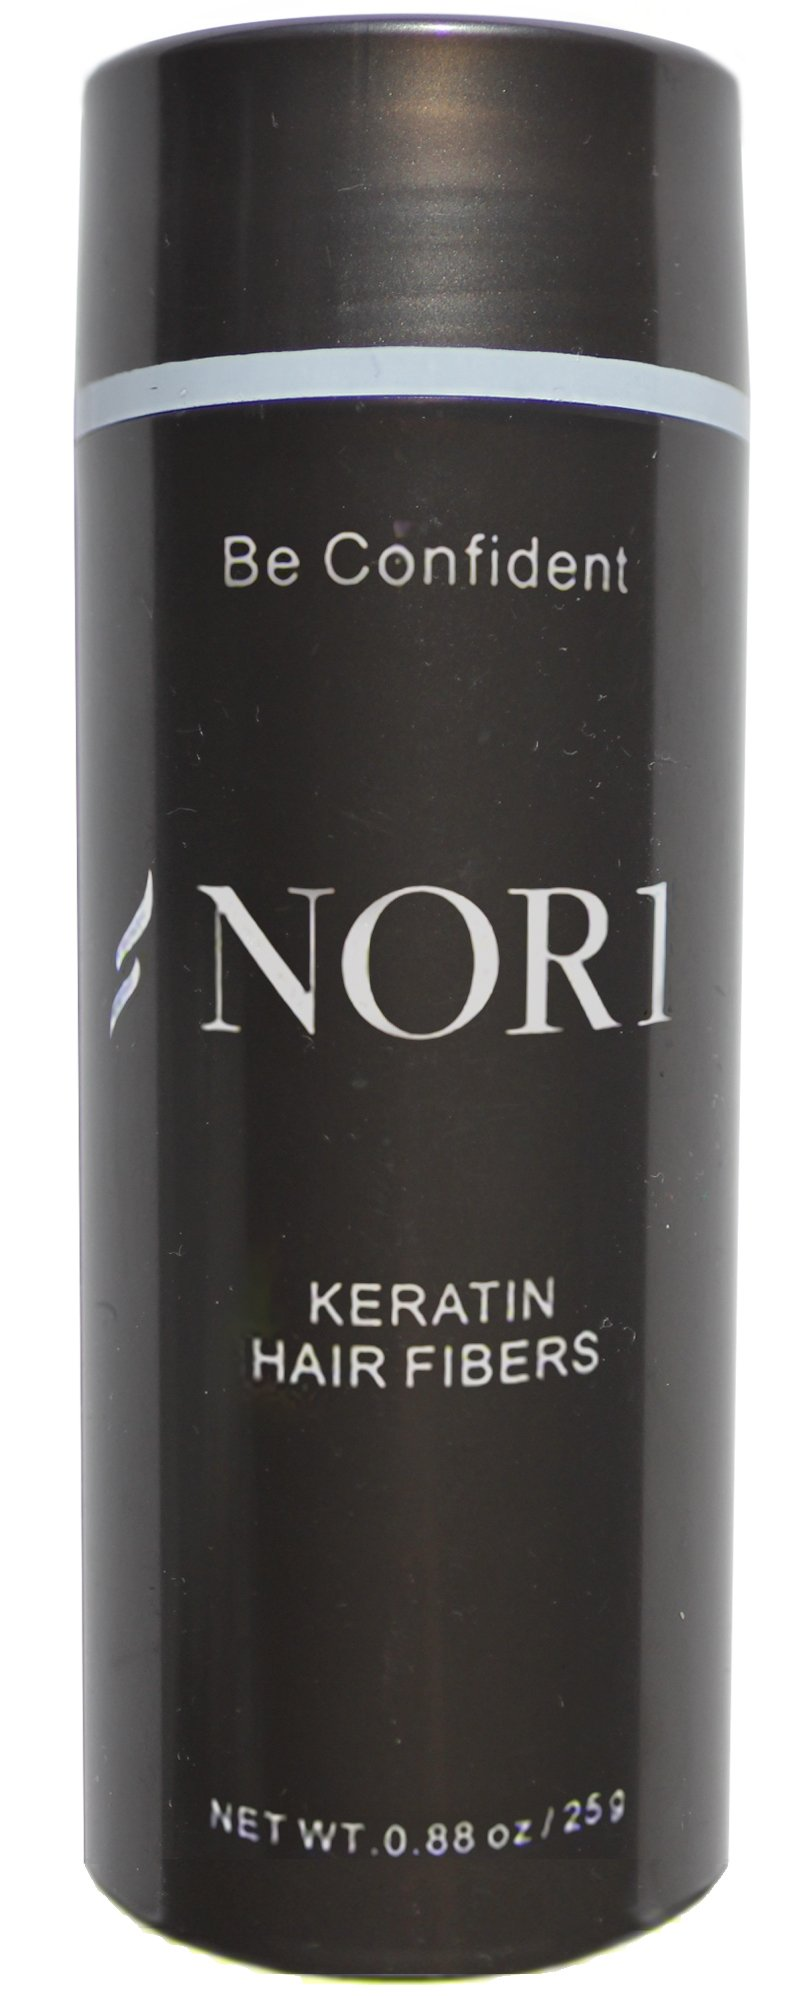 Nor1 Keratin Hair Building Fibers: Hair Fiber Filler and Thickener for Men and Women - Cover Up and Concealer for Thinning Areas or Minor Bald Spot - Thicker, Fuller Hair in Seconds - 25 grams, Blonde by Nor1